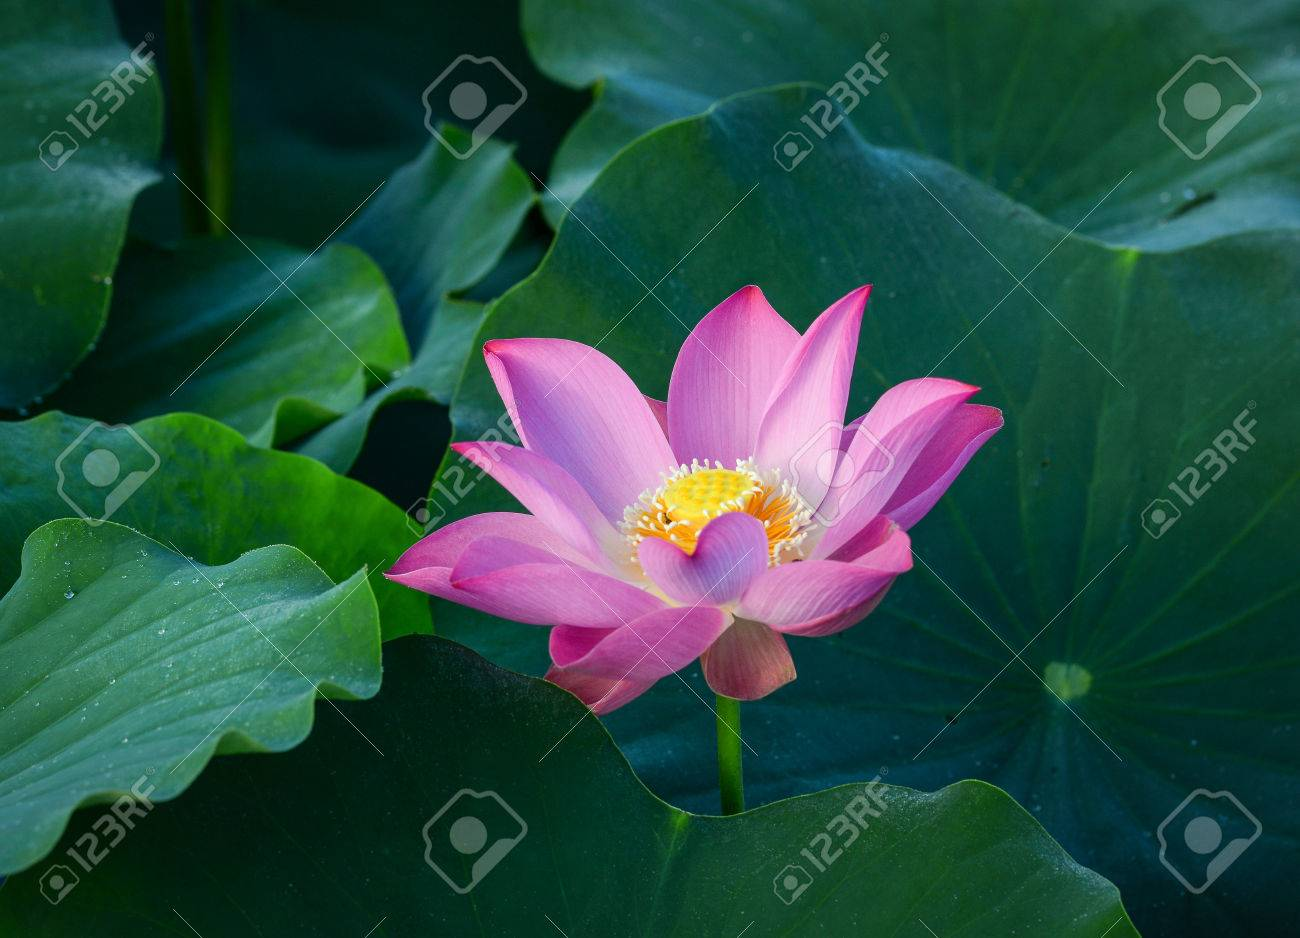 The lotus flower buddhism image collections fresh lotus flowers close up of lotus flower in buddhist symbolism the lotus izmirmasajfo